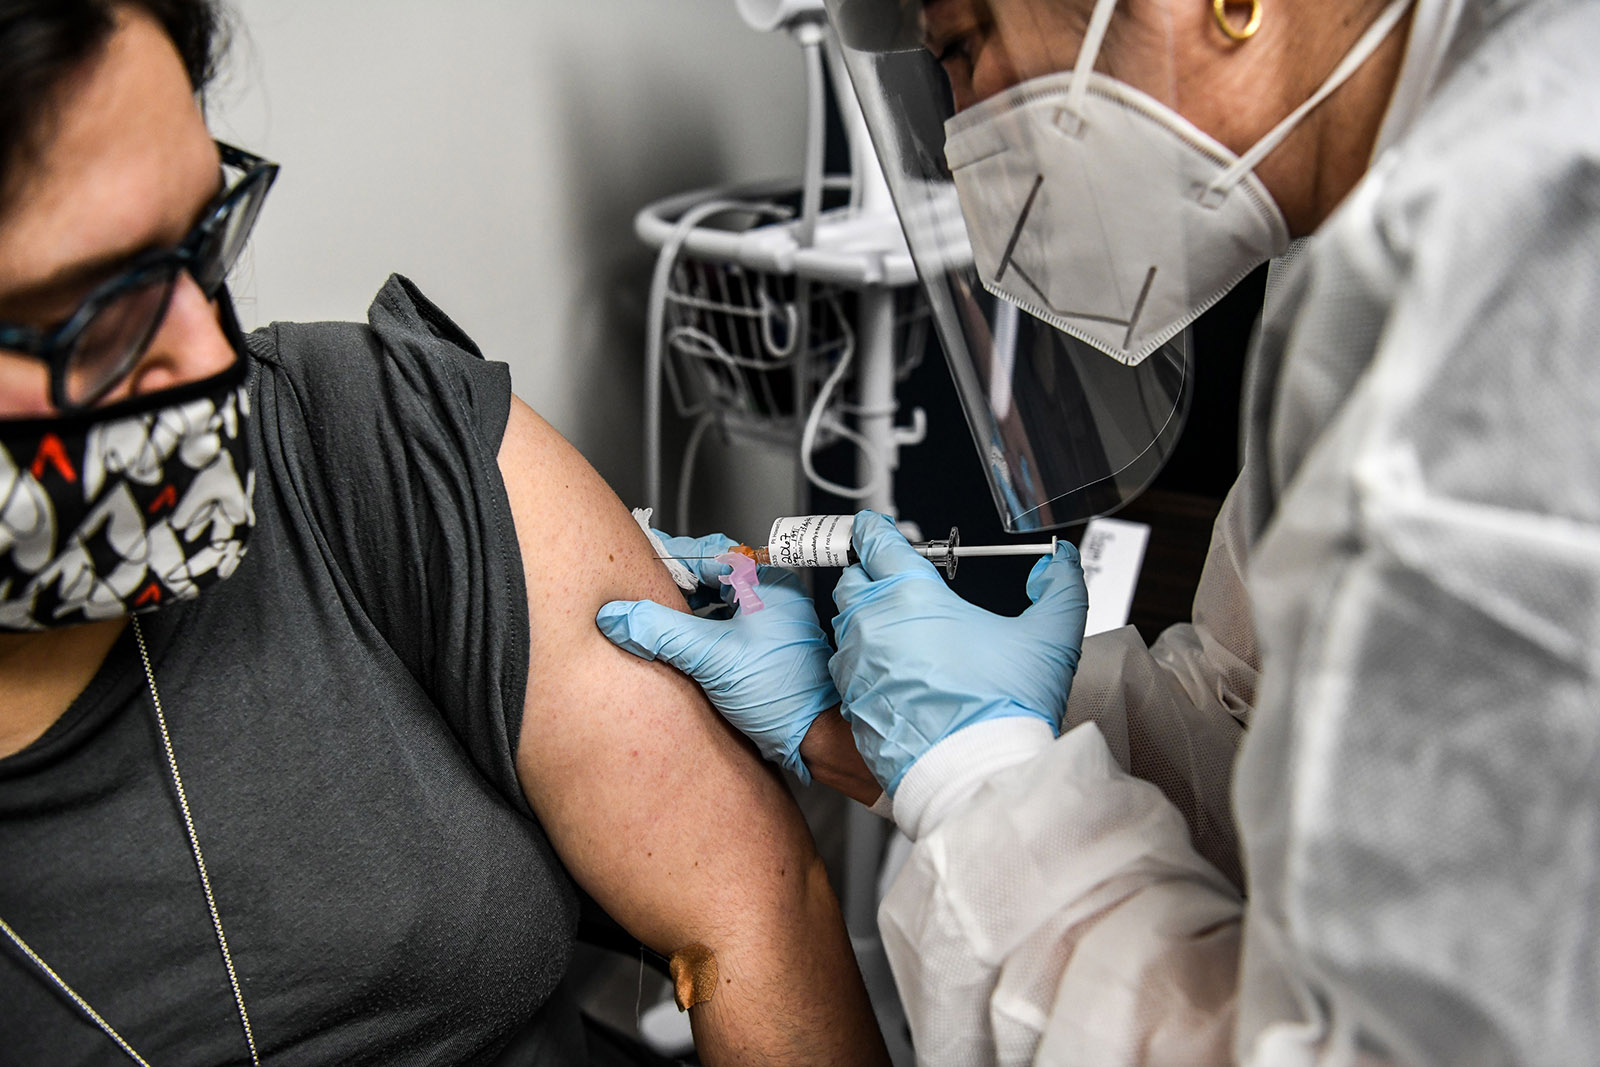 Heather Lieberman, 28, receives a Covid-19 vaccination from Yaquelin De La Cruz at the Research Centers of America in Hollywood, Florida, on August 13.